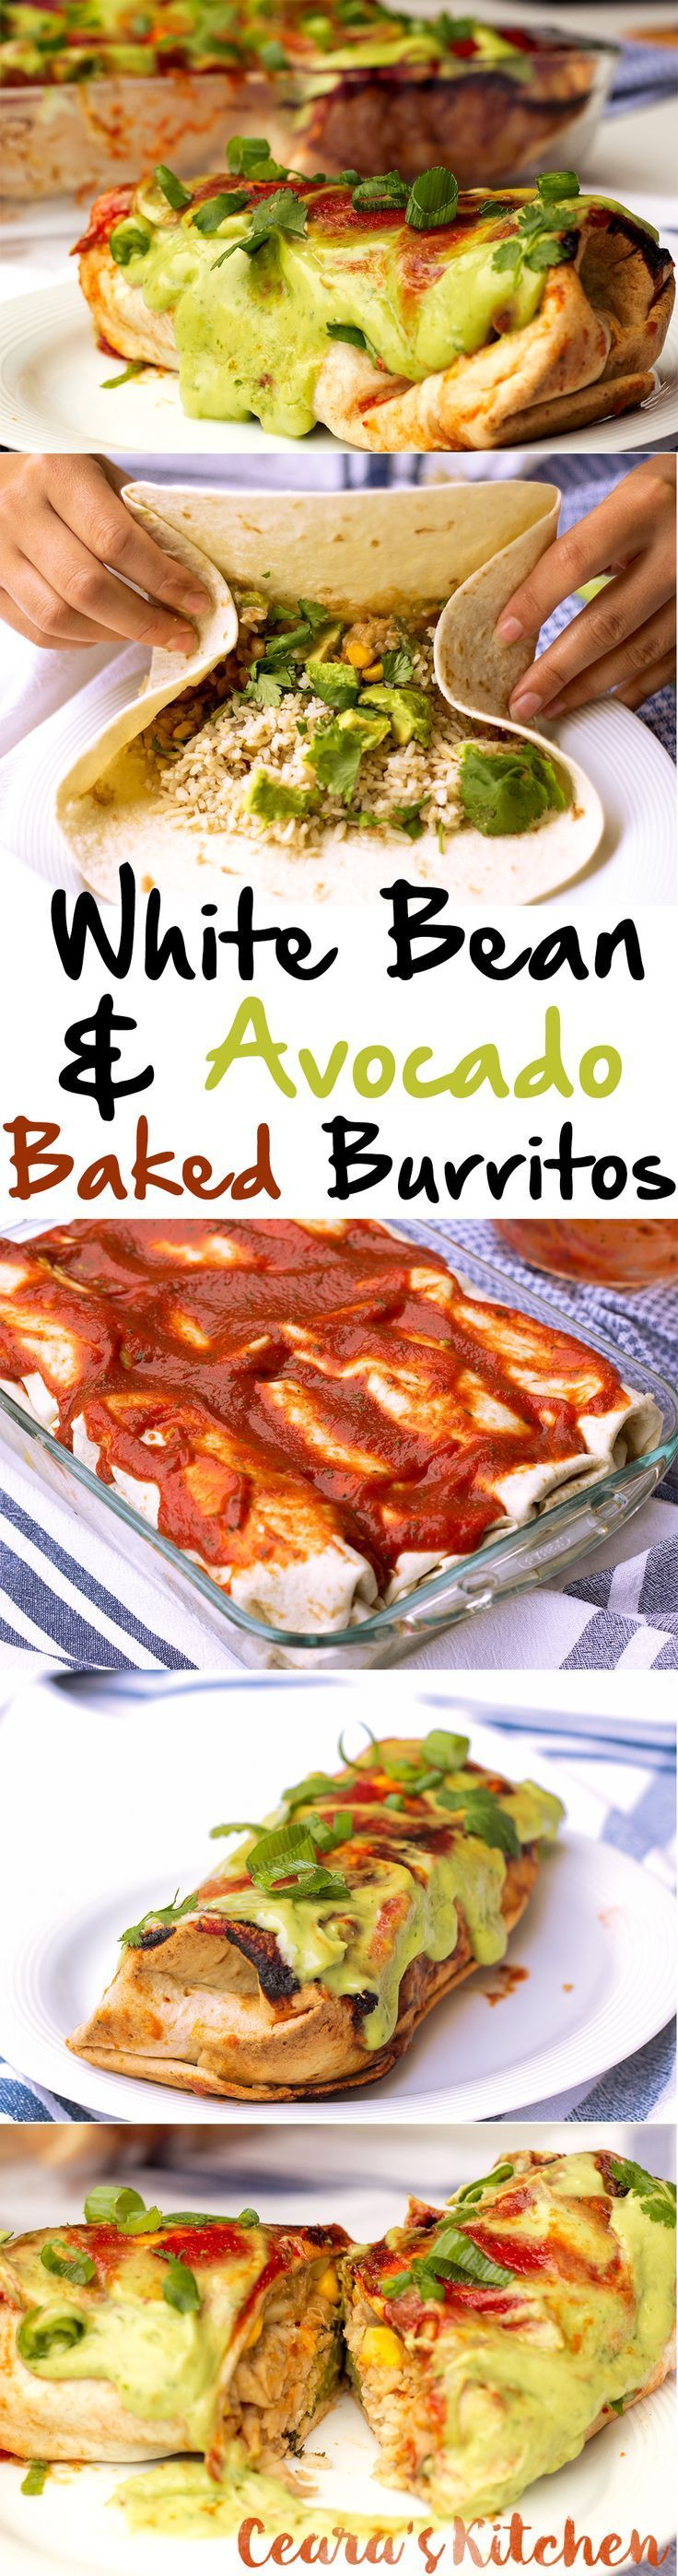 These White Bean and Avocado Baked Burritos make the perfect dinner - stuffed with white bean, mushrooms, corn + lots of avocado! #healthy #mexicanfood #burritos #vegan #vegetarian #glutenfree